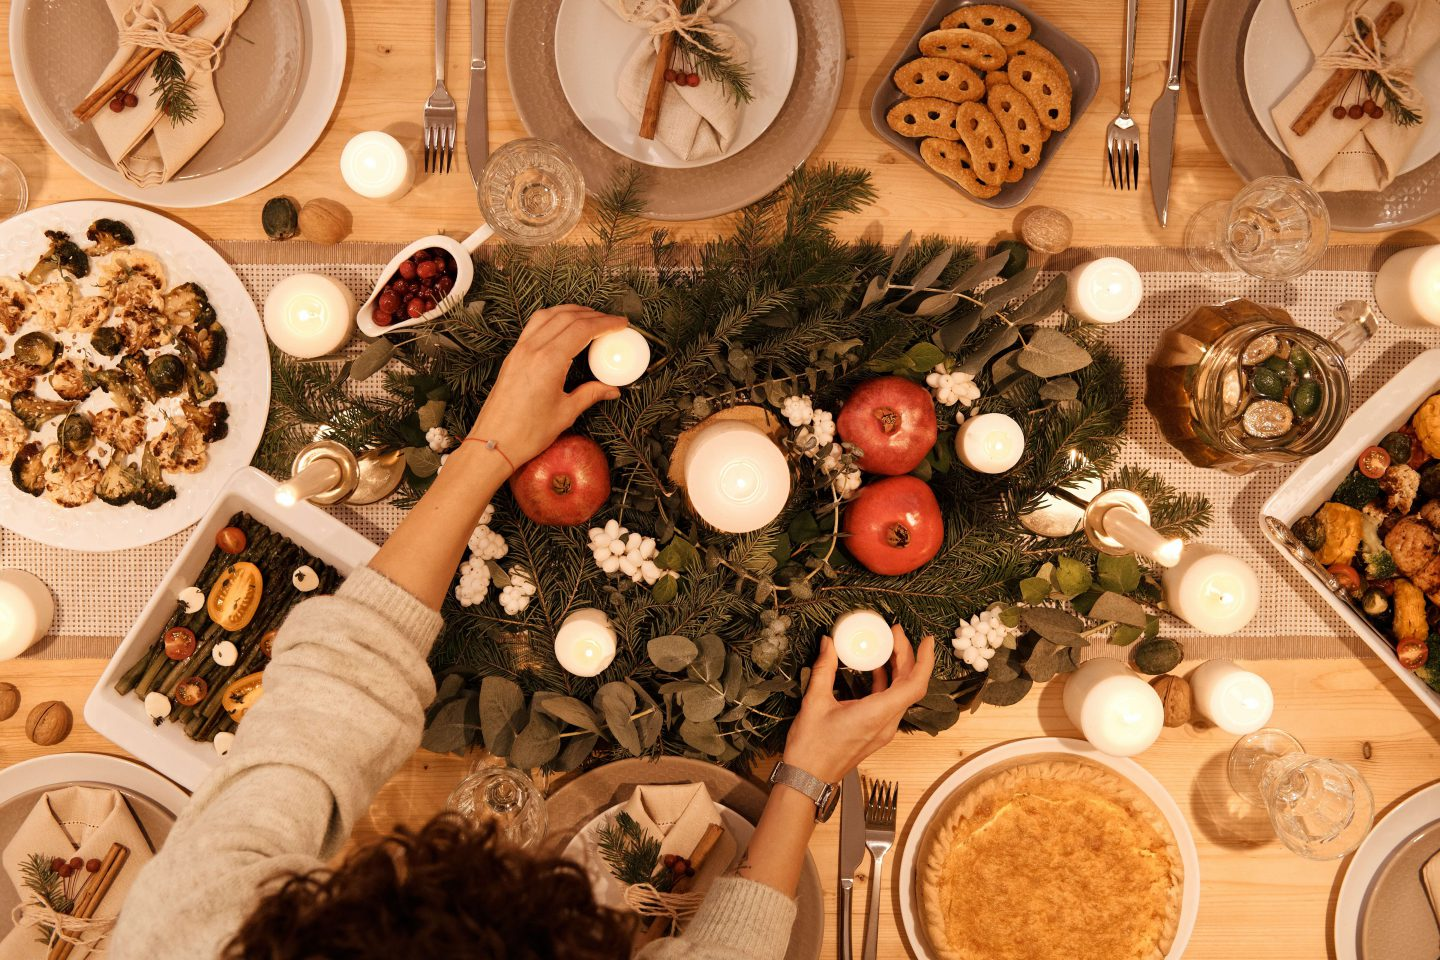 An overhead photo of a Christmas table with food and decorations